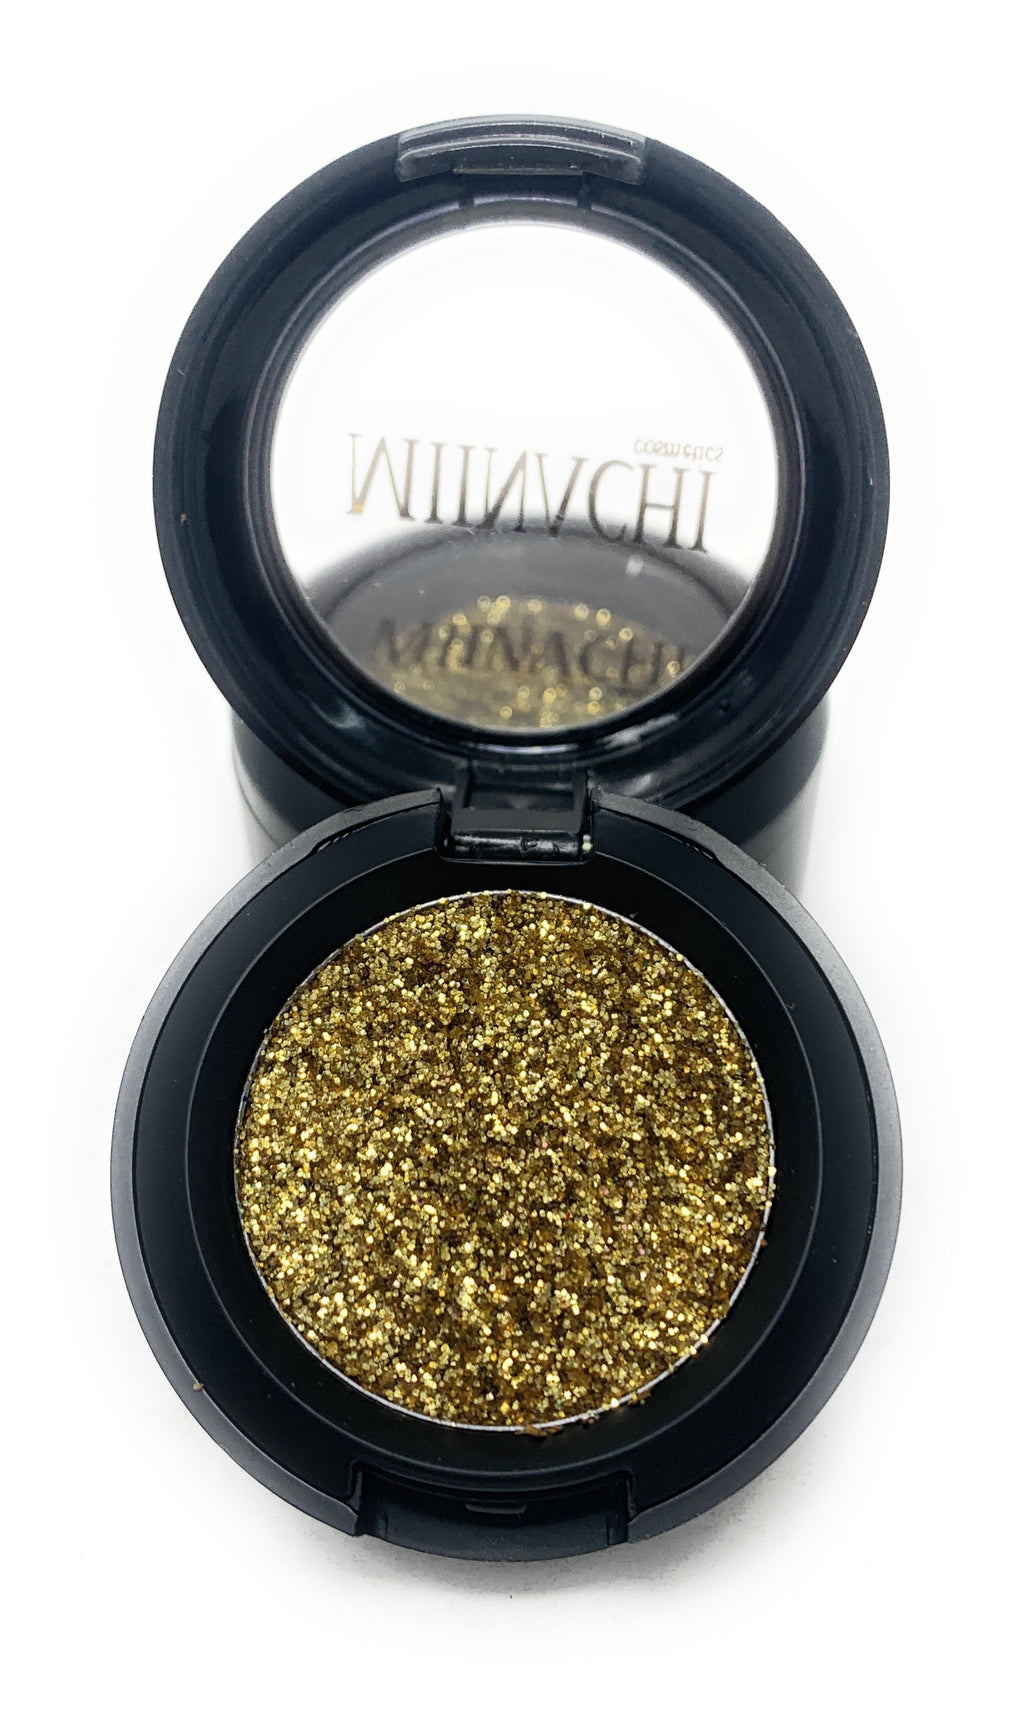 Single Pressed Glitter in the shade Innocence, No Glue Needed, In Compact, Pigmented, No Fall Out, Glitter, Cosmetic Grade Glitter